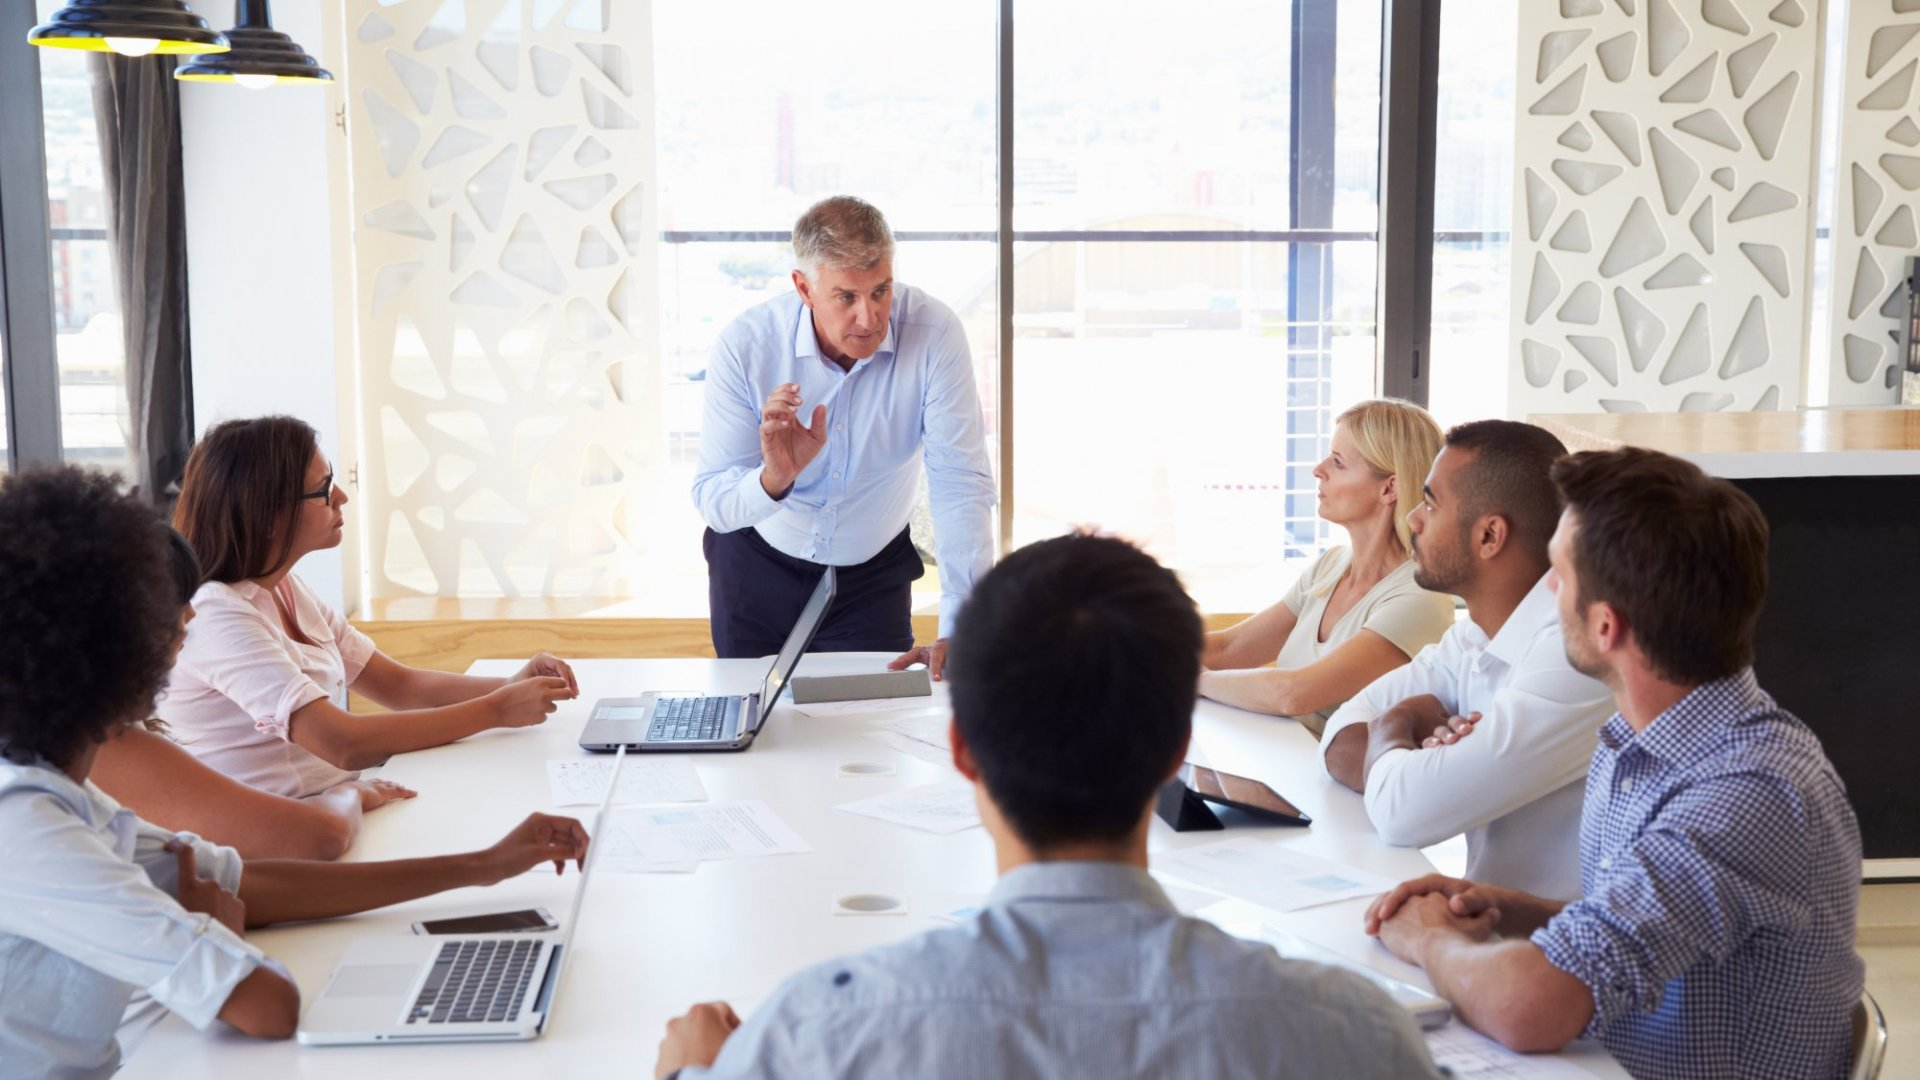 7 Simple Leadership Habits that Will Raise the Bar at Your Company